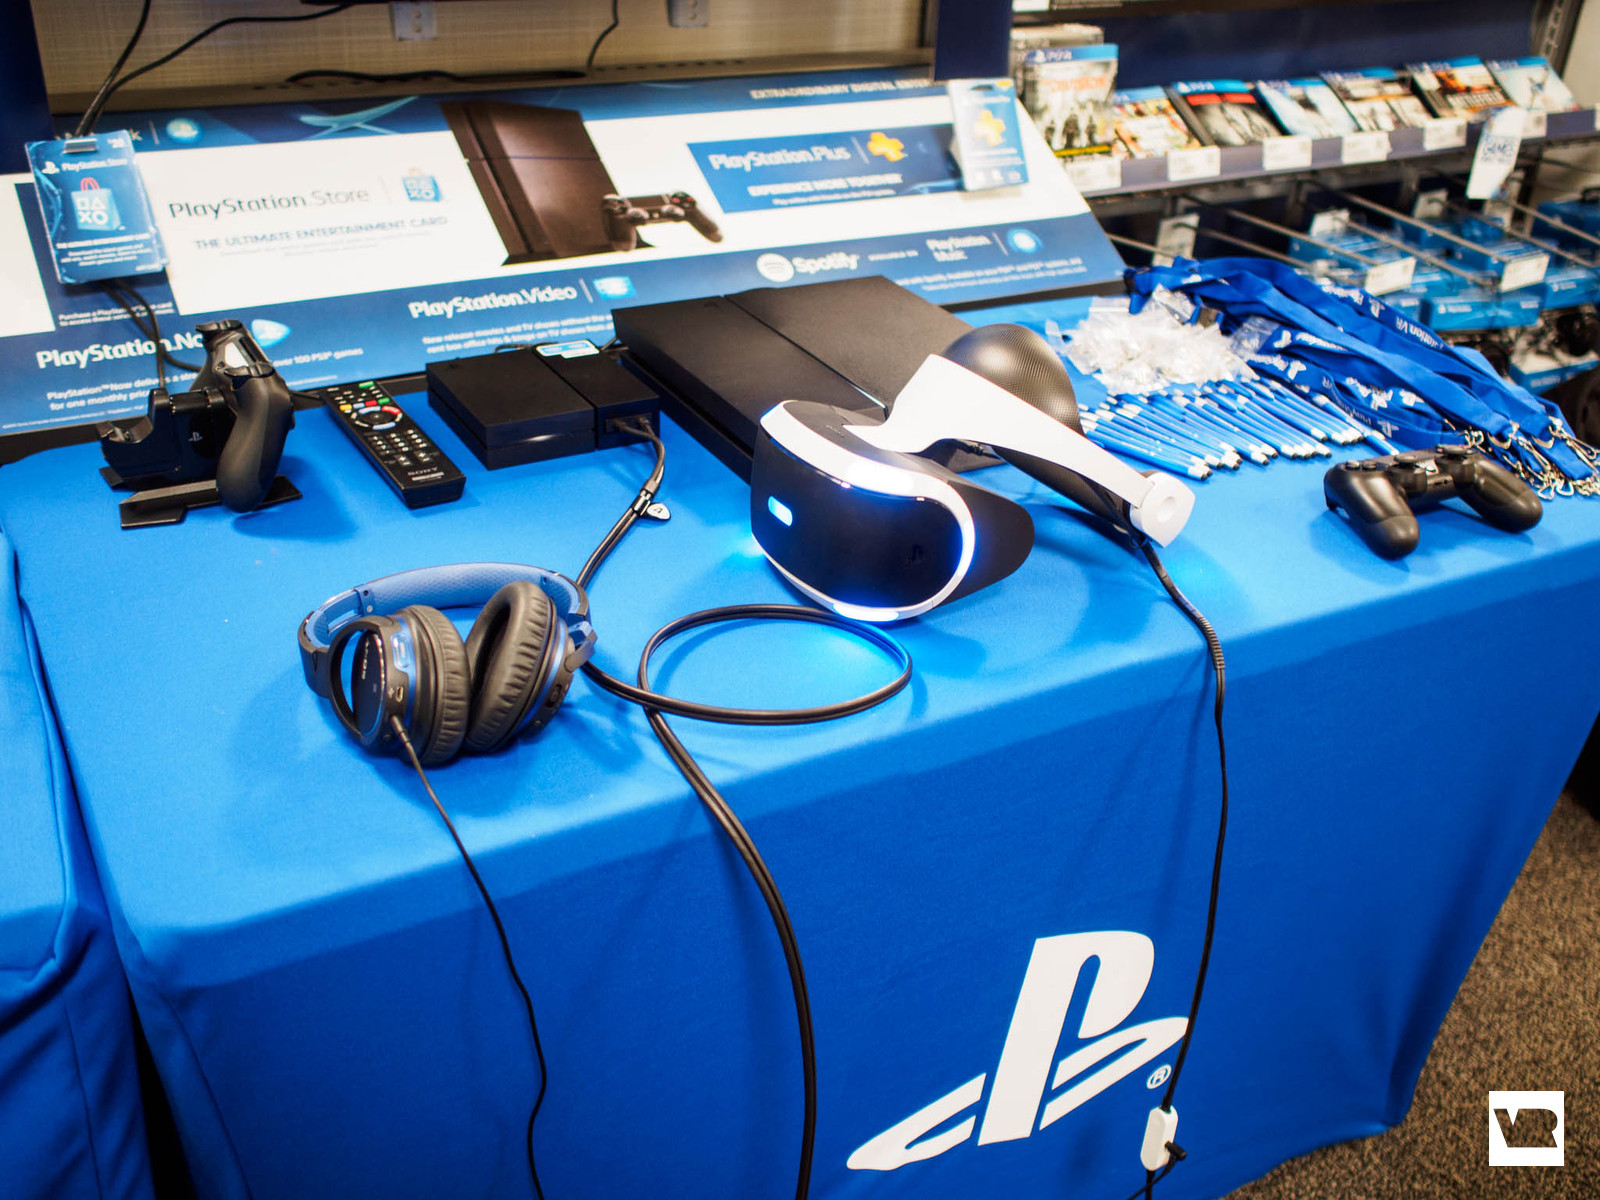 PSVR demo table